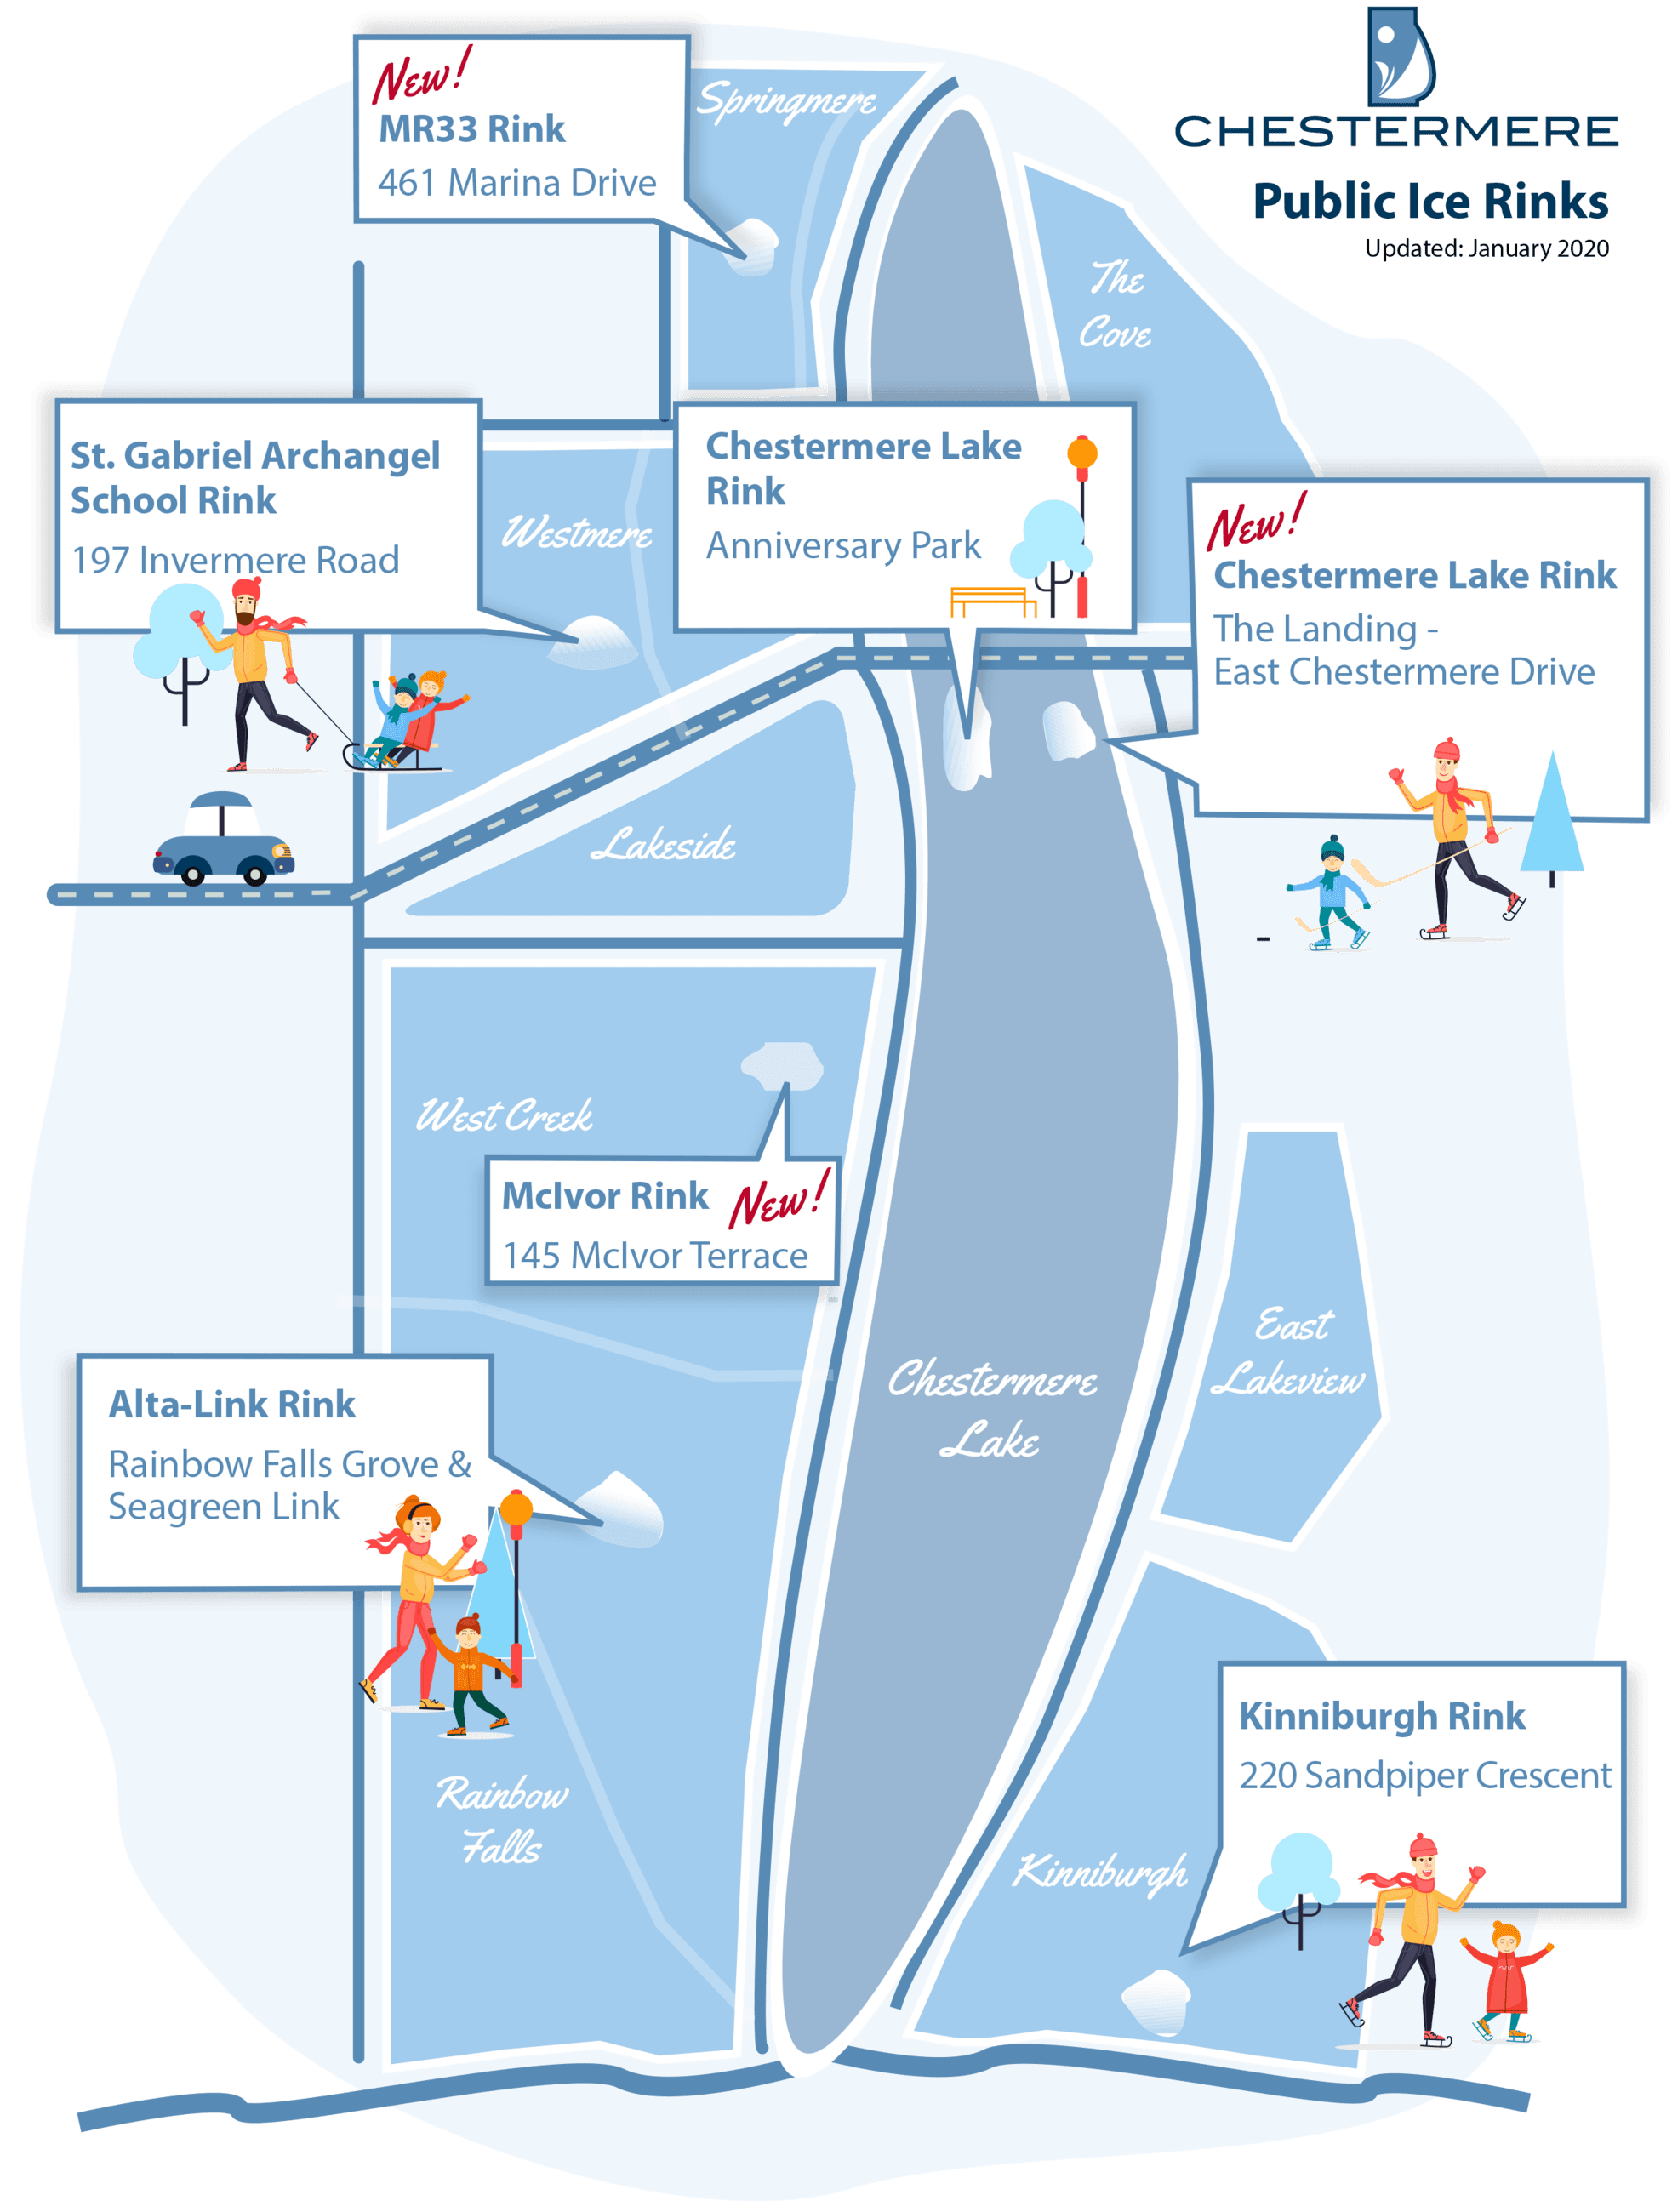 Chestermere Outdoor Skating rink locations